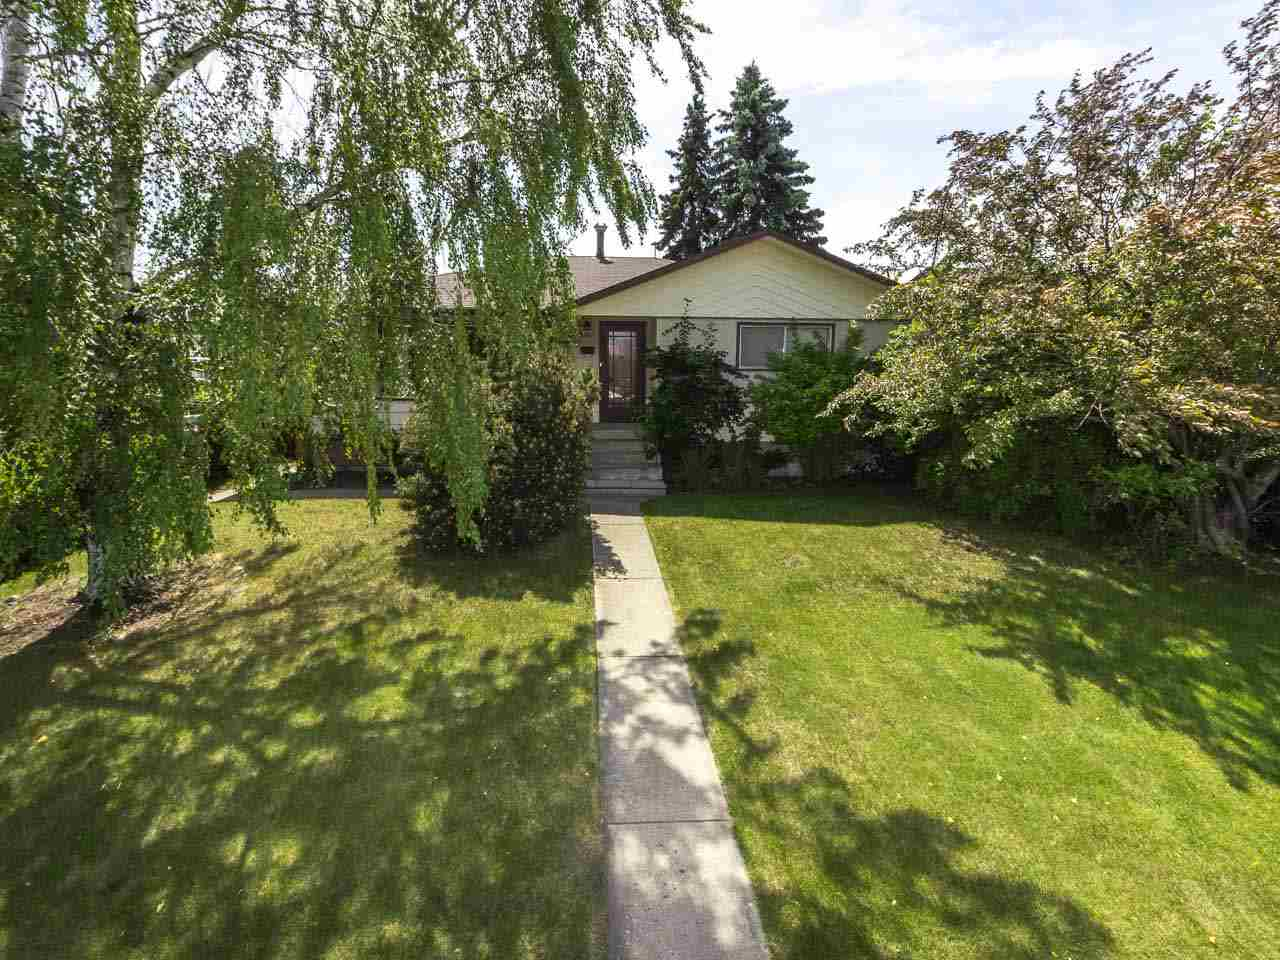 Main Photo: 6907 94 Avenue in Edmonton: Zone 18 House for sale : MLS(r) # E4070518